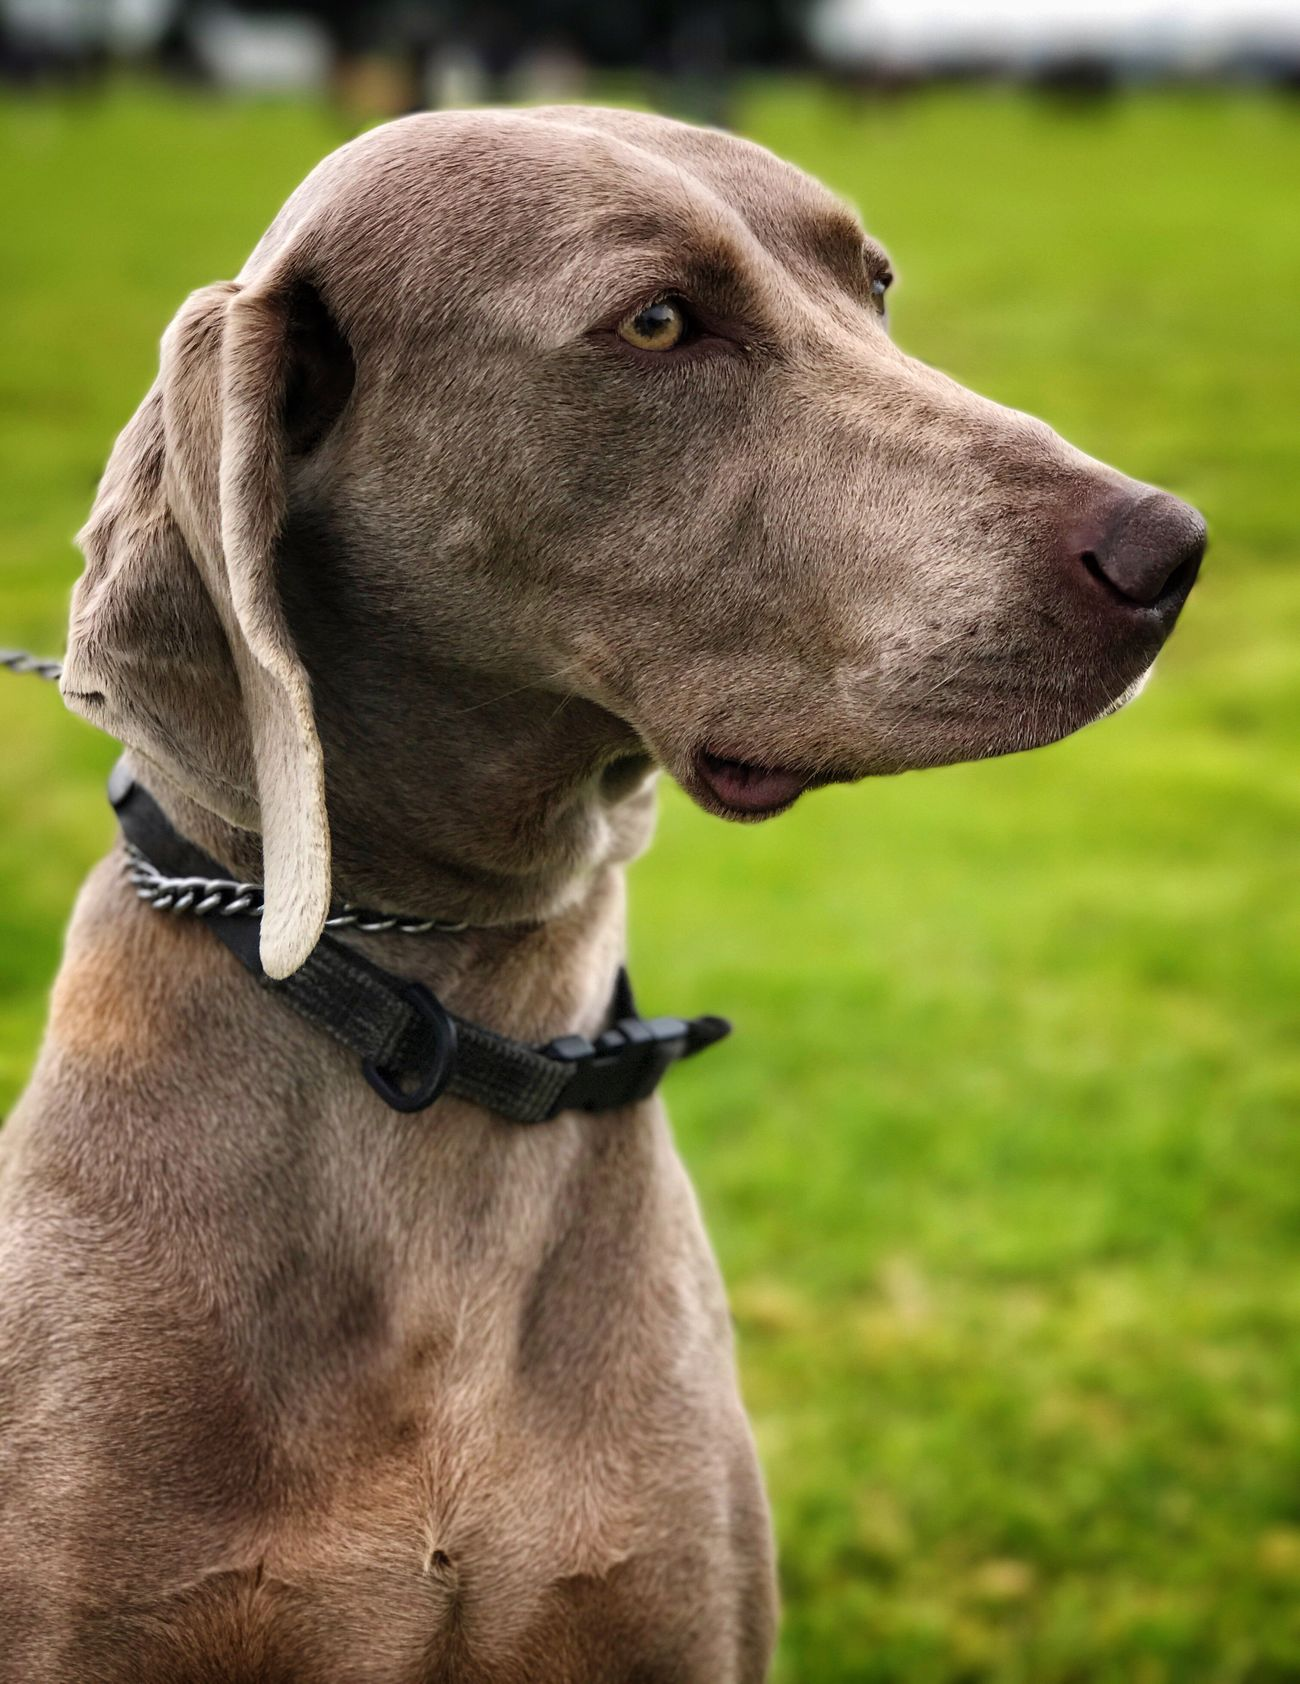 Dog Pets Domestic Animals Animal Themes Mammal Focus On Foreground One Animal Pet Collar Weimaraner No People Field Outdoors Close-up Day Grass Nature